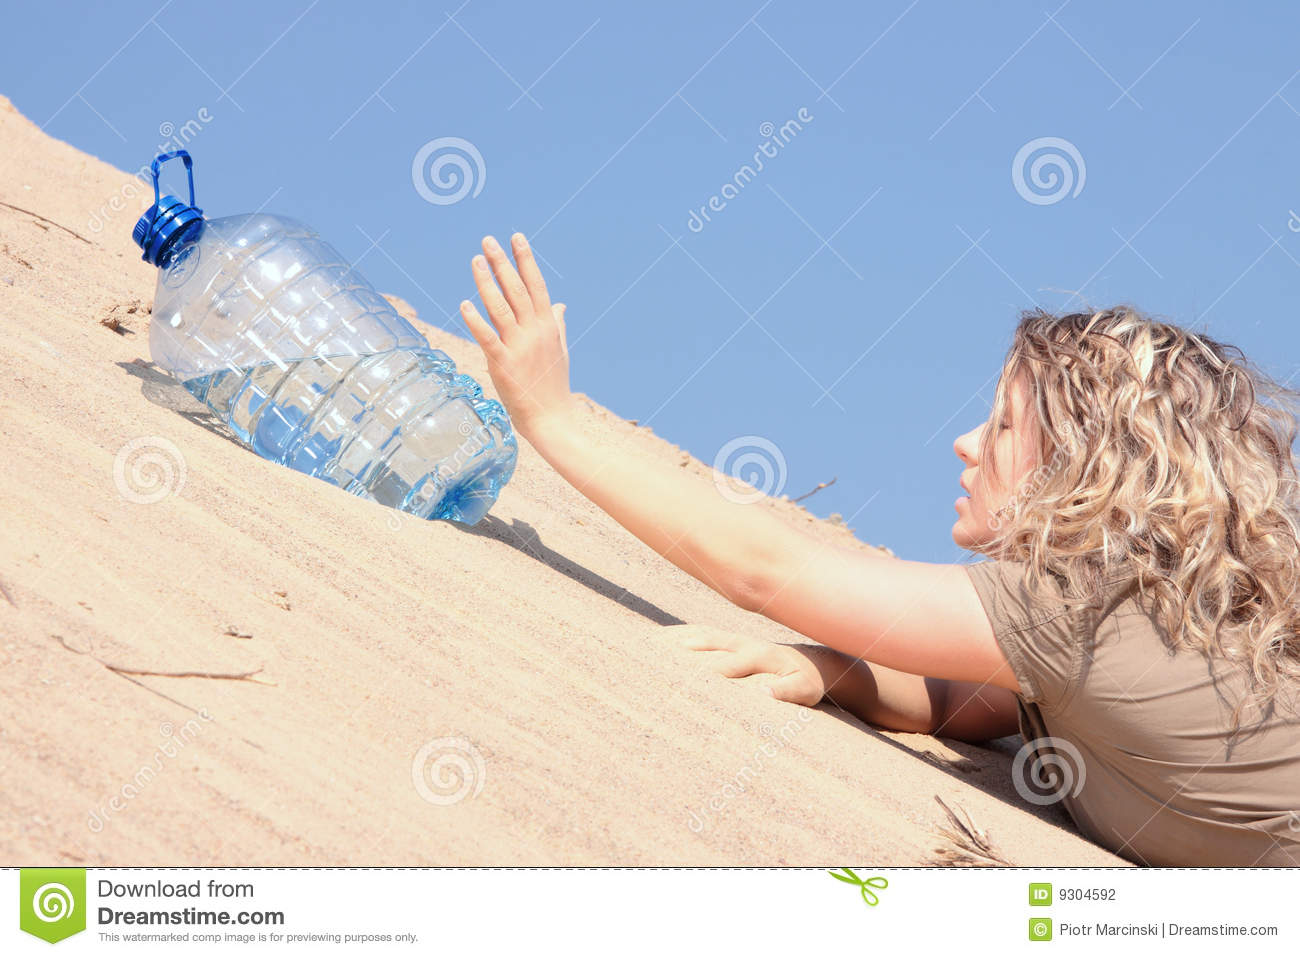 Thirsty girl looking for water